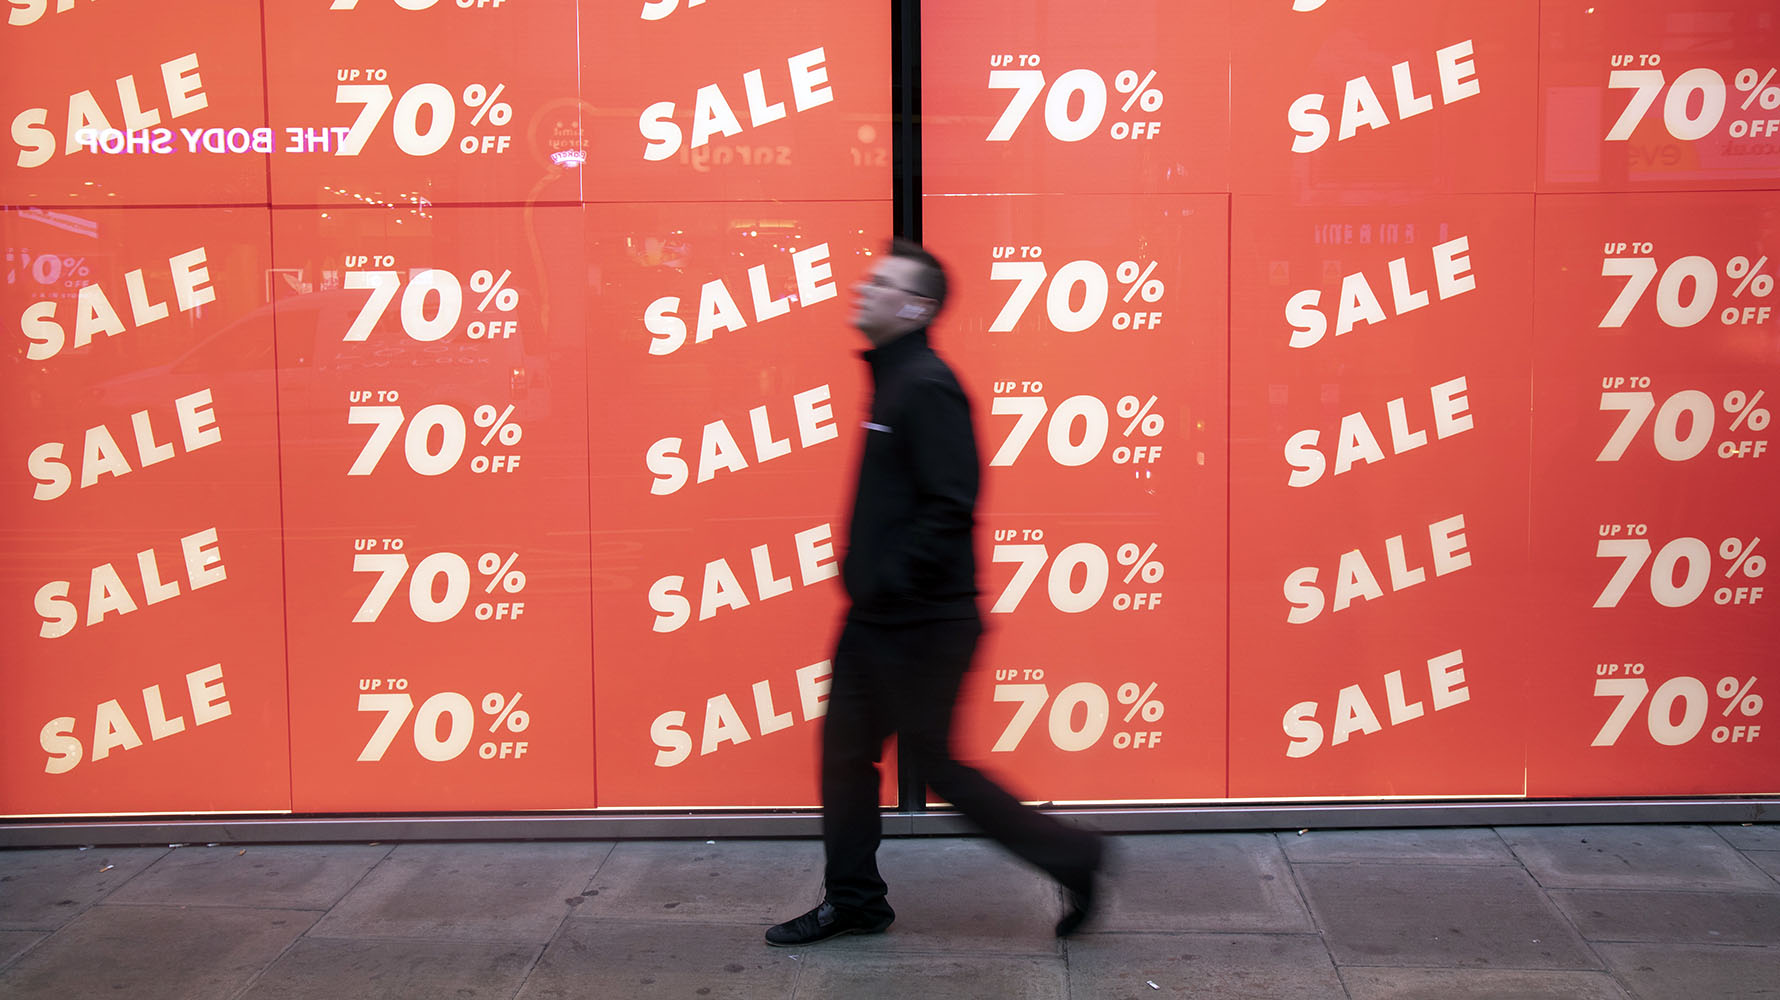 People out shopping on Oxford Street walk past large scale January sale signs in red and white for major high street clothing retail shops on 7th January 2019 in London, United Kingdom. Its time for the Winter sales, and most shops are advertising big reductions in prices. Bargains are available and the shopping streets are busy. Oxford Street is a major road in the West End of London. It is Europe